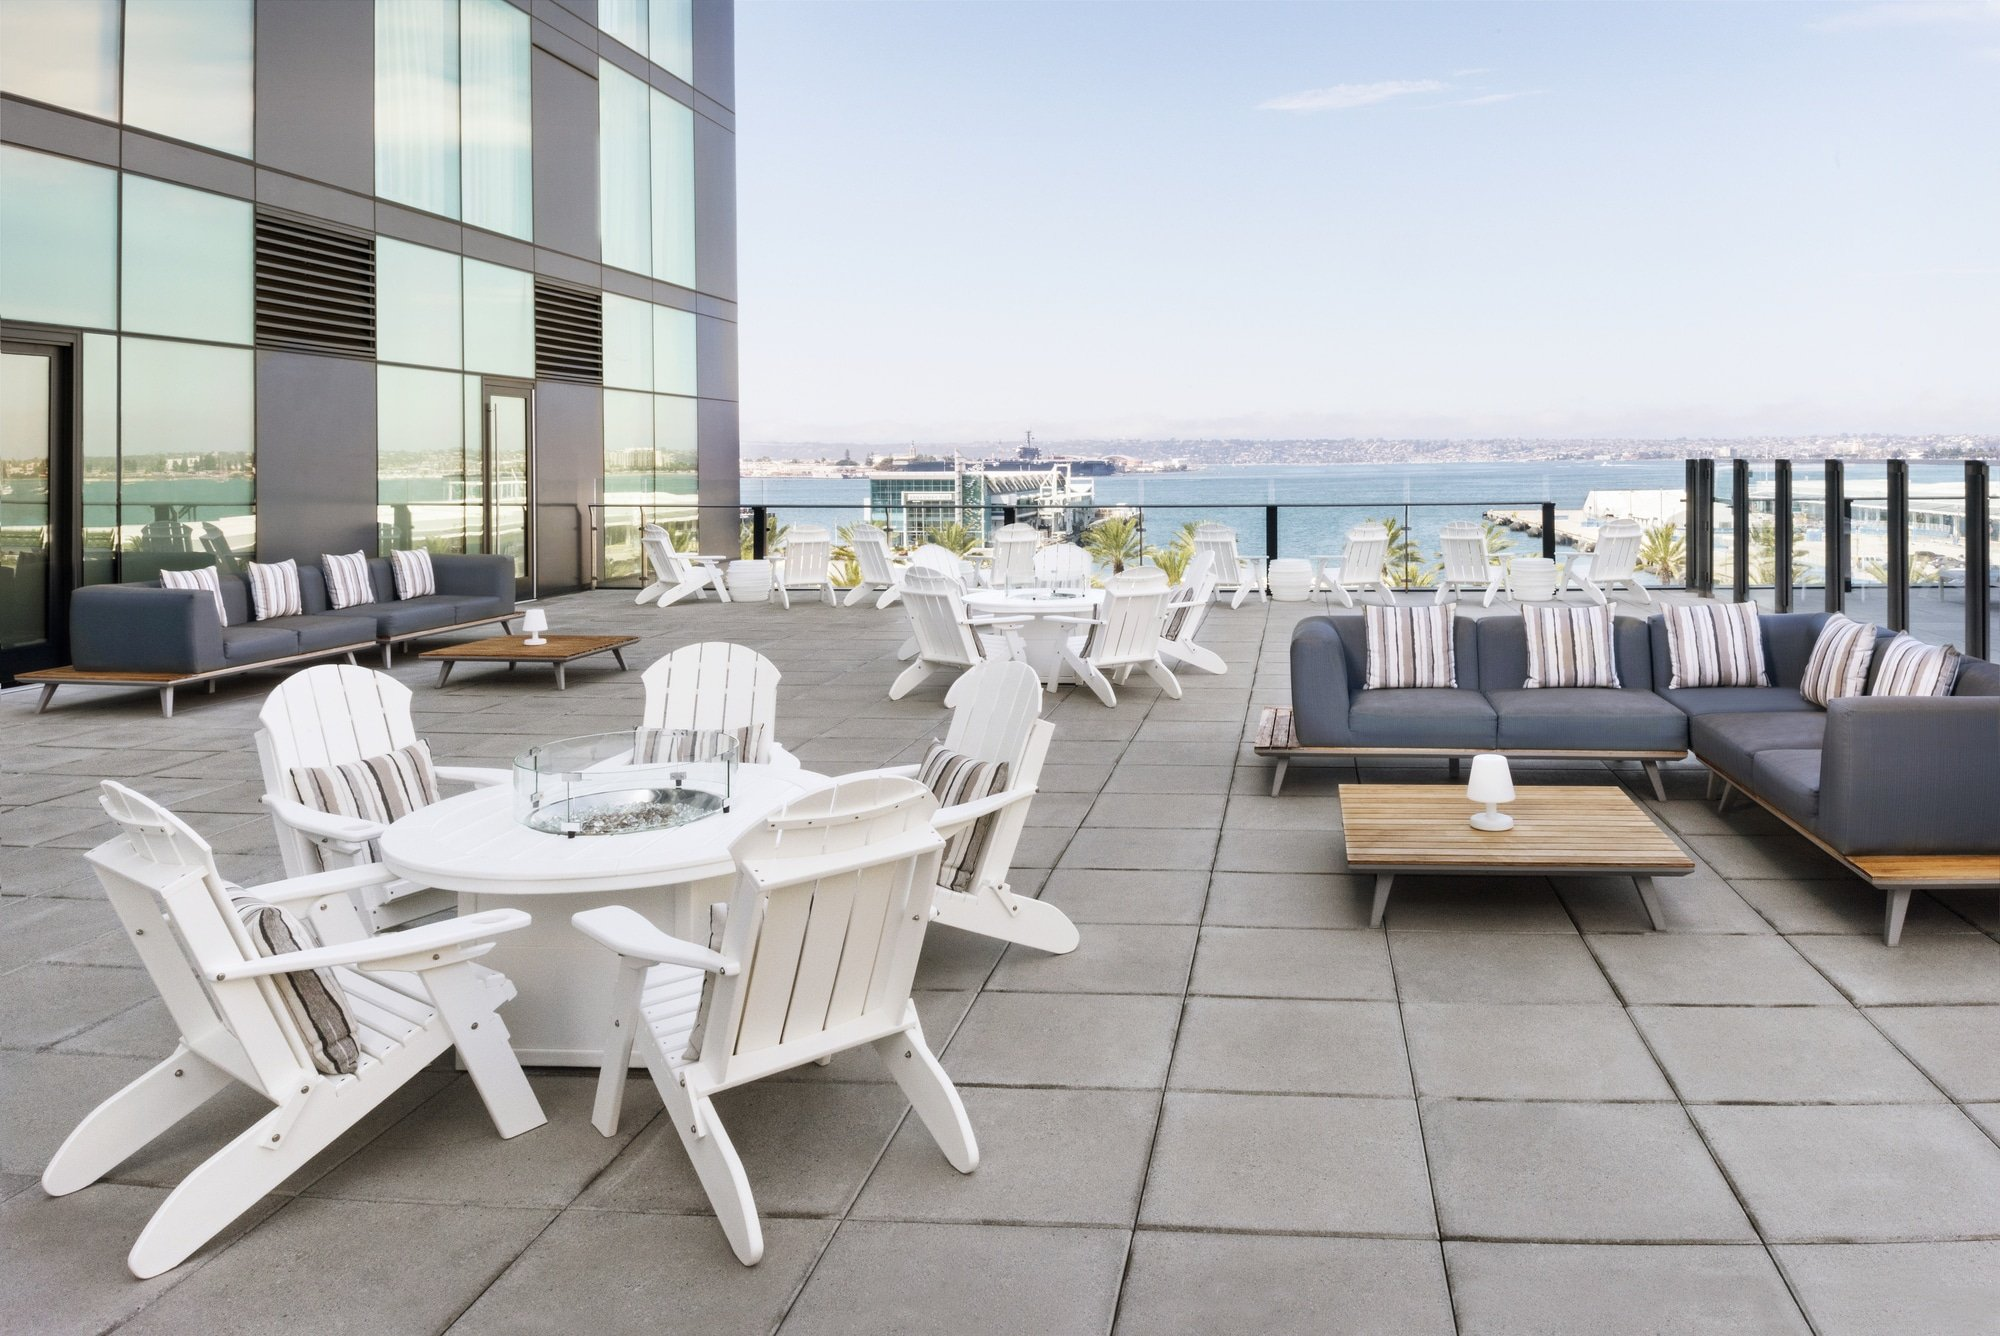 Outdoor seating areas at layover on a sunny day at InterContinental San Diego